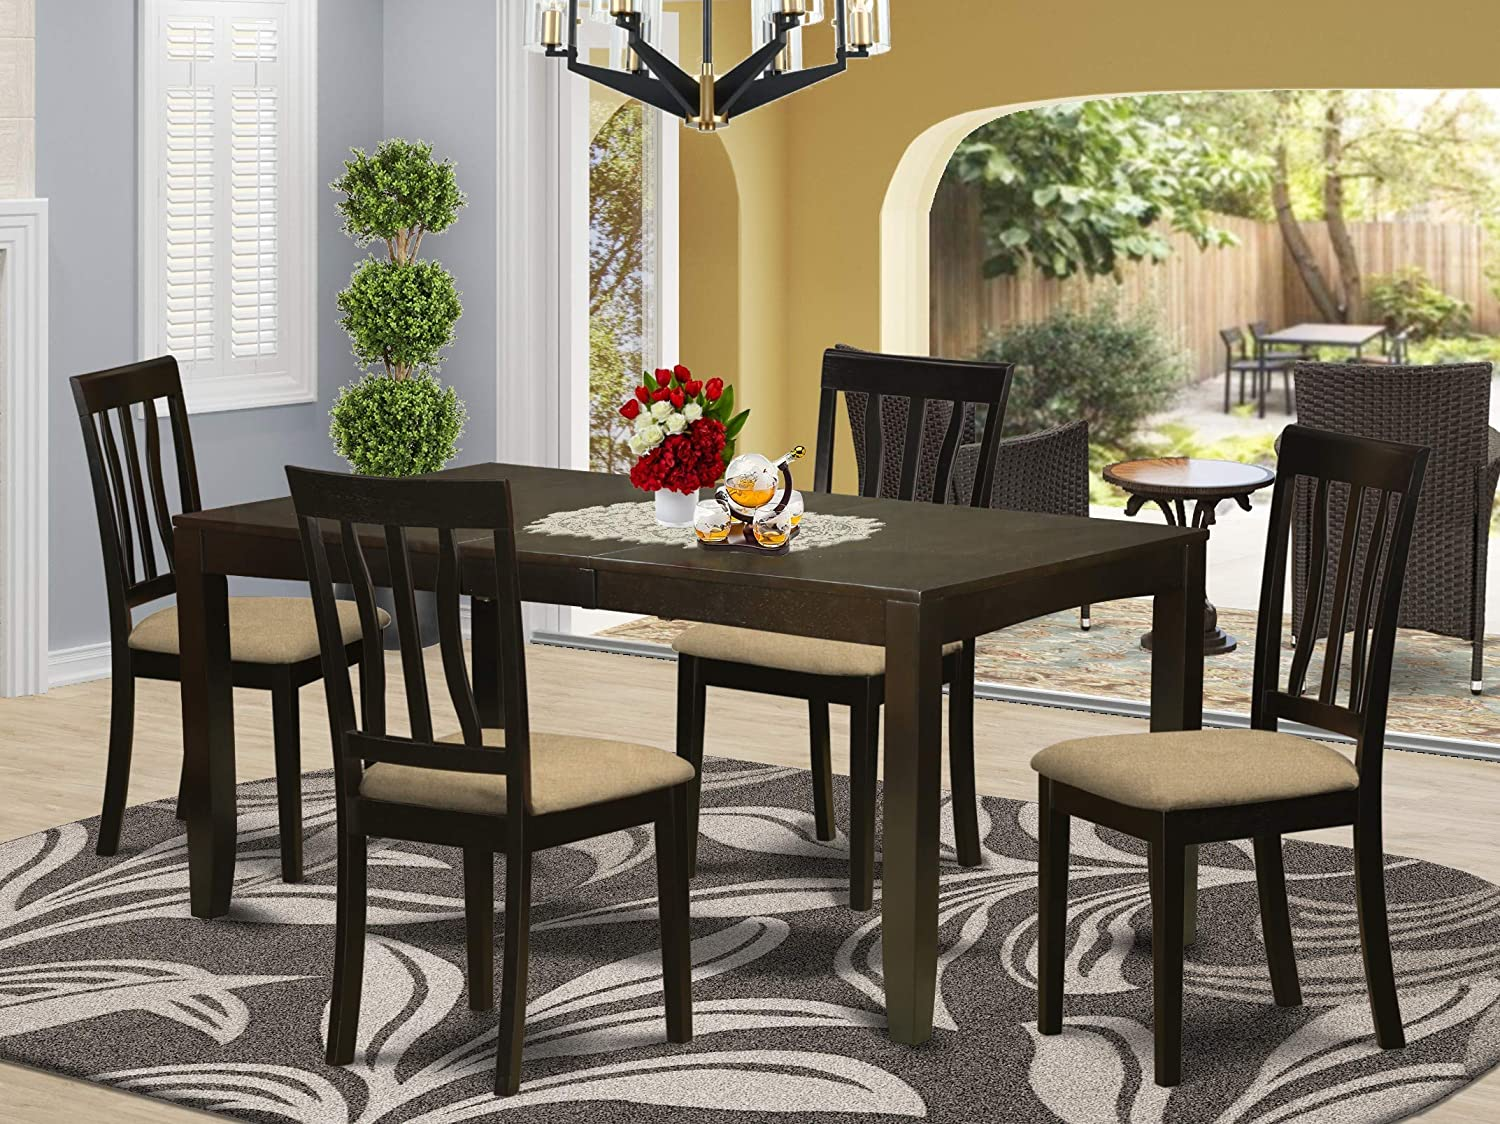 East West Furniture LYAN5-CAP-C 5-Piece Kitchen Table Set – Rectangular Top Kitchen Dining Table – 4 Dining Room Chairs Slatted Back and Linen Fabric Seat (Cappuccino Finish)